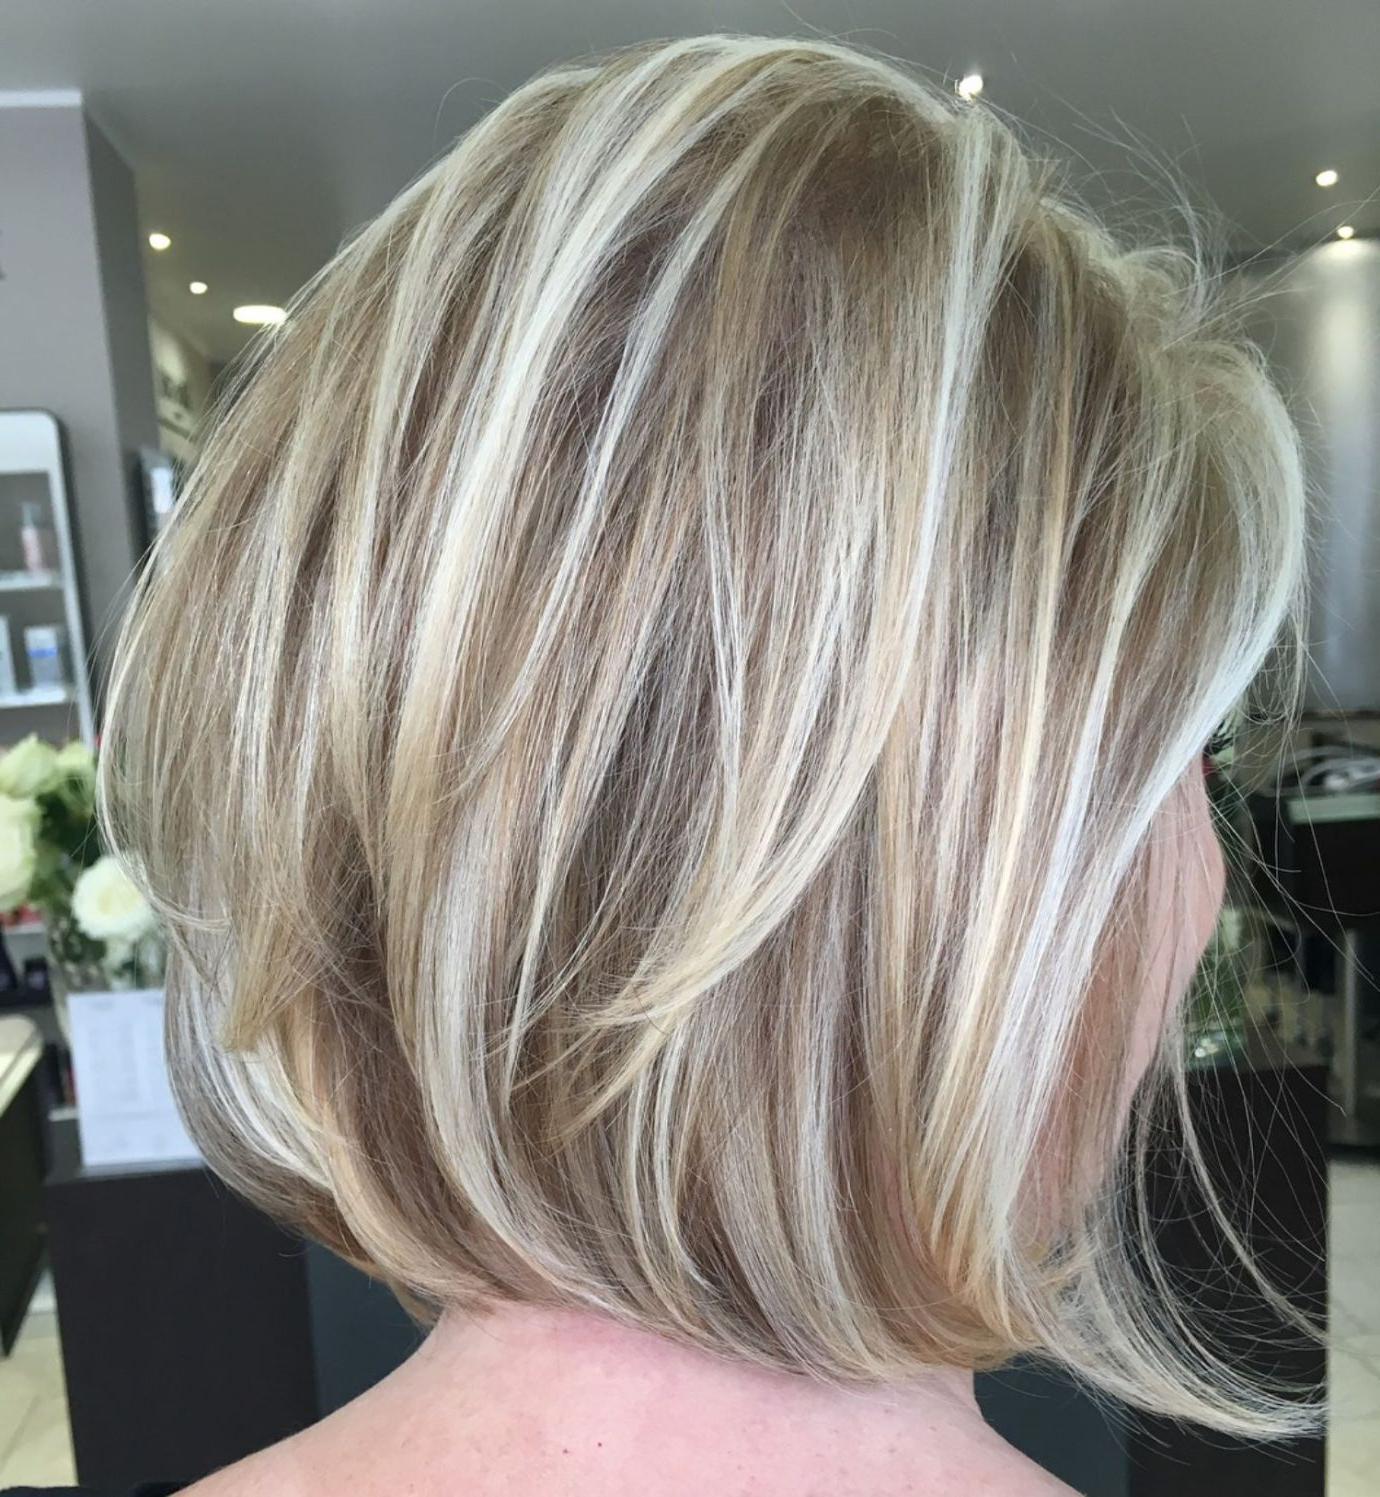 60 Layered Bob Styles: Modern Haircuts With Layers For Any With Blunt Cut Blonde Balayage Bob Hairstyles (View 2 of 20)